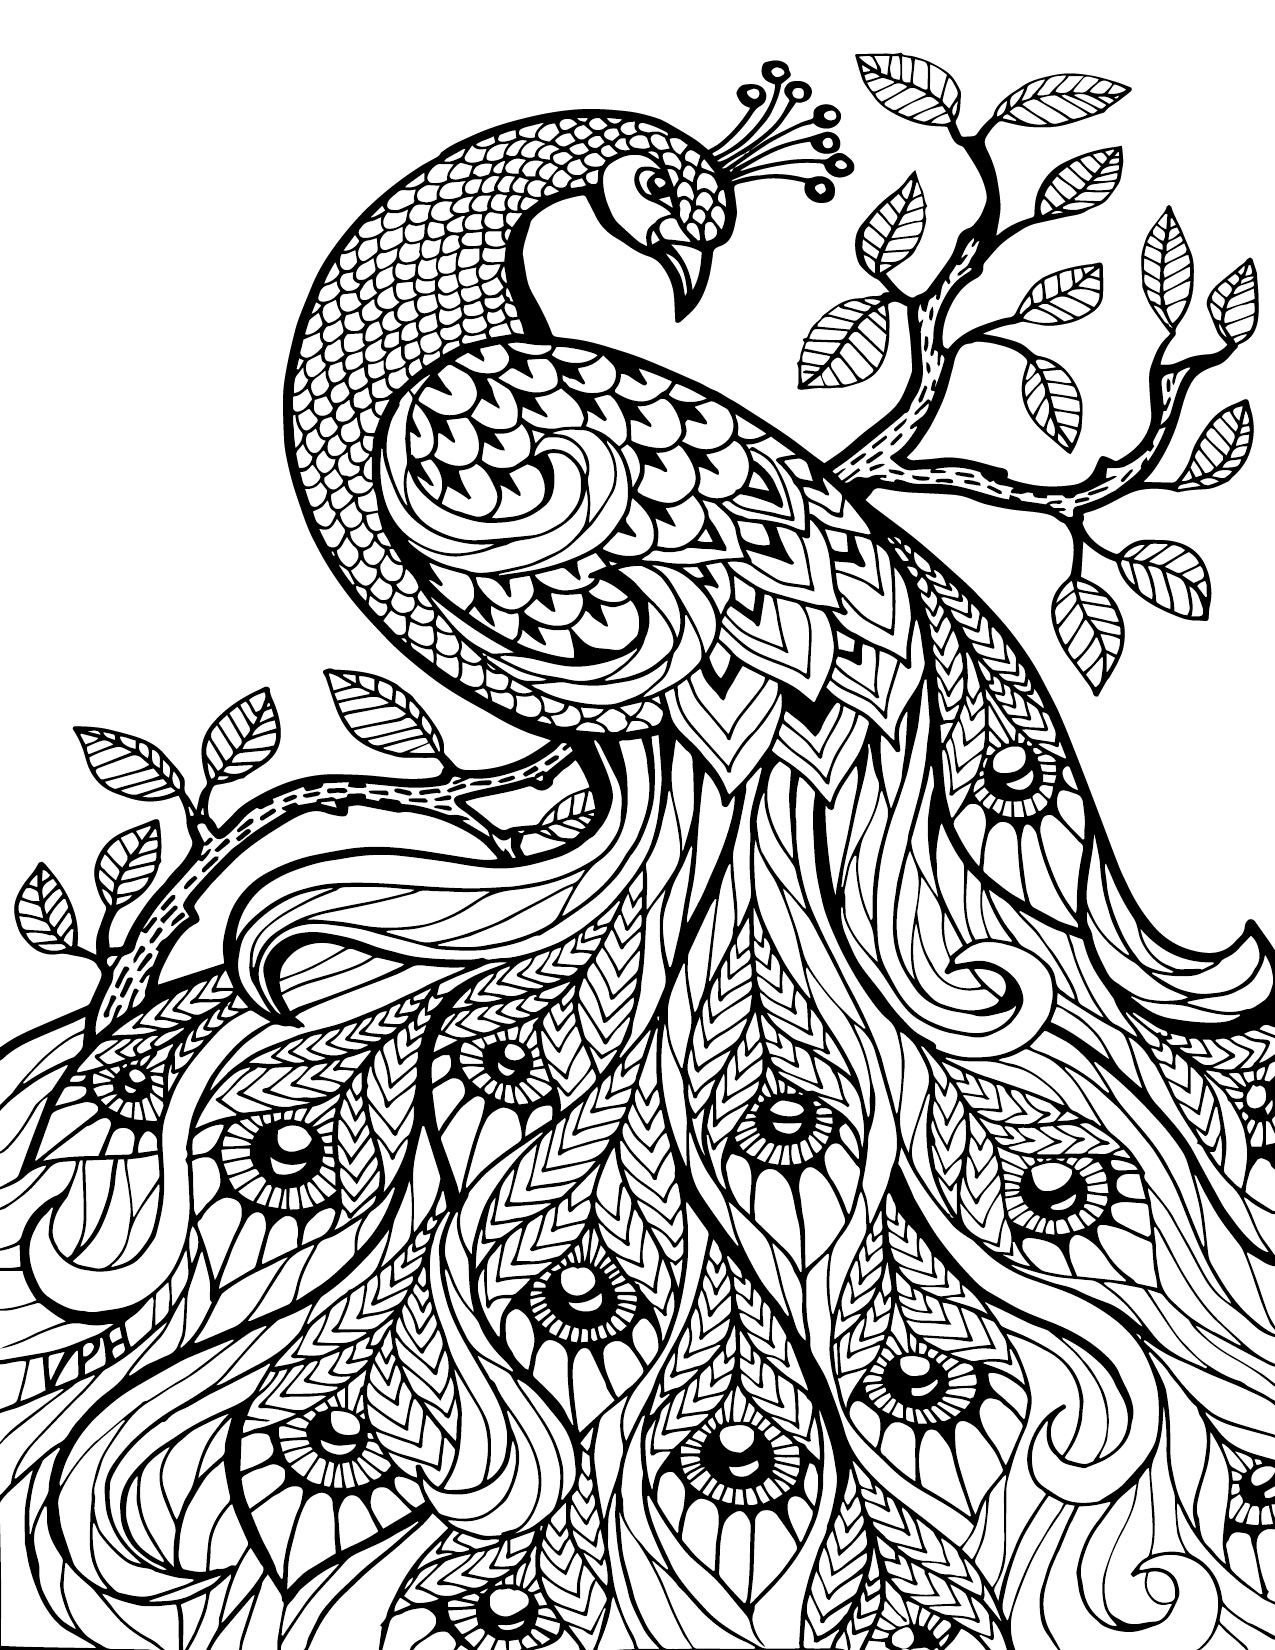 free download adult coloring pages adult coloring pages - Free Download Coloring Pages